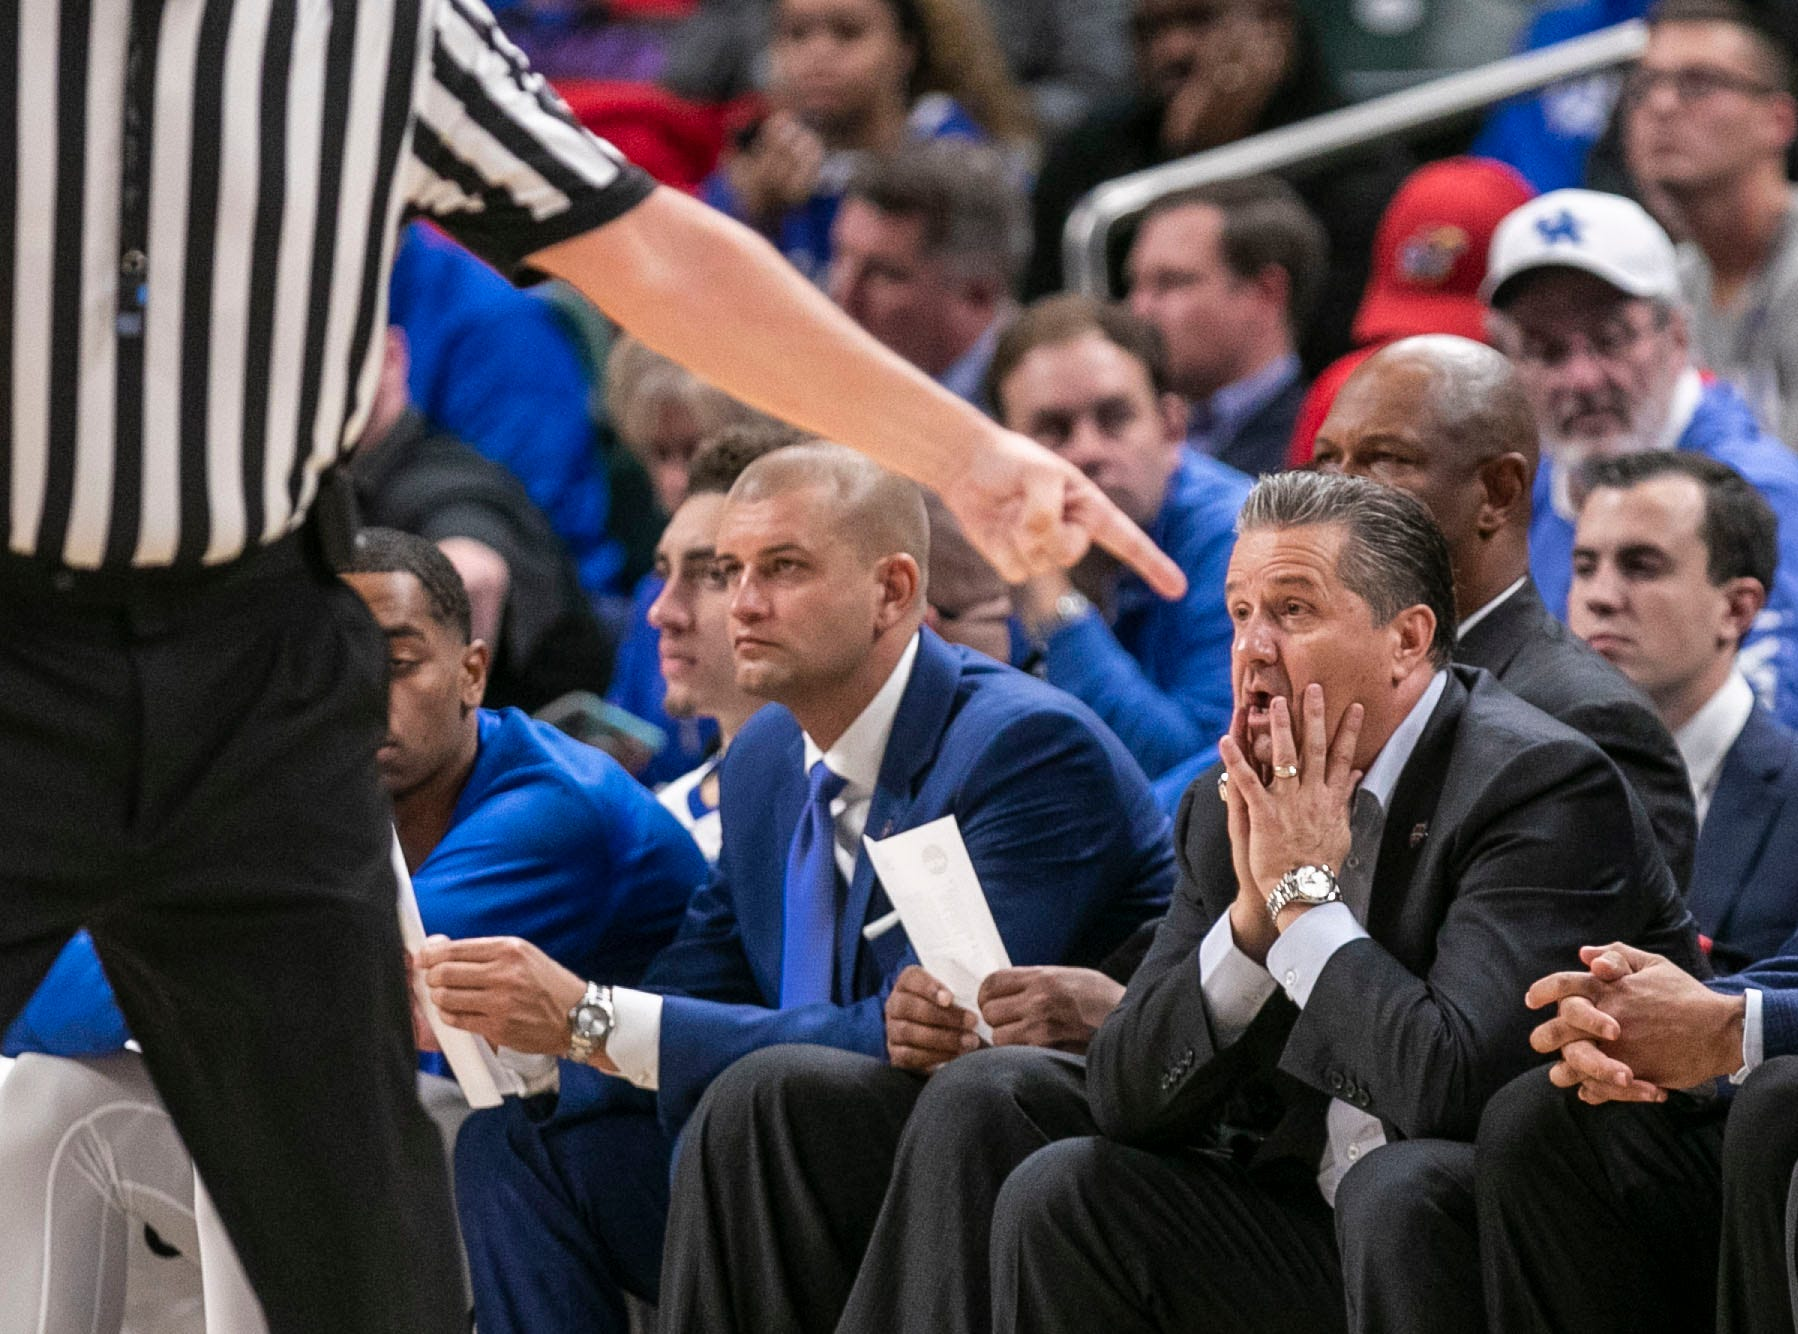 The Kentucky bench was bedeviled and dismayed as Duke rolled past the Wildcats 118-84 in the Champions Classic Tuesday night. Nov. 6, 2018